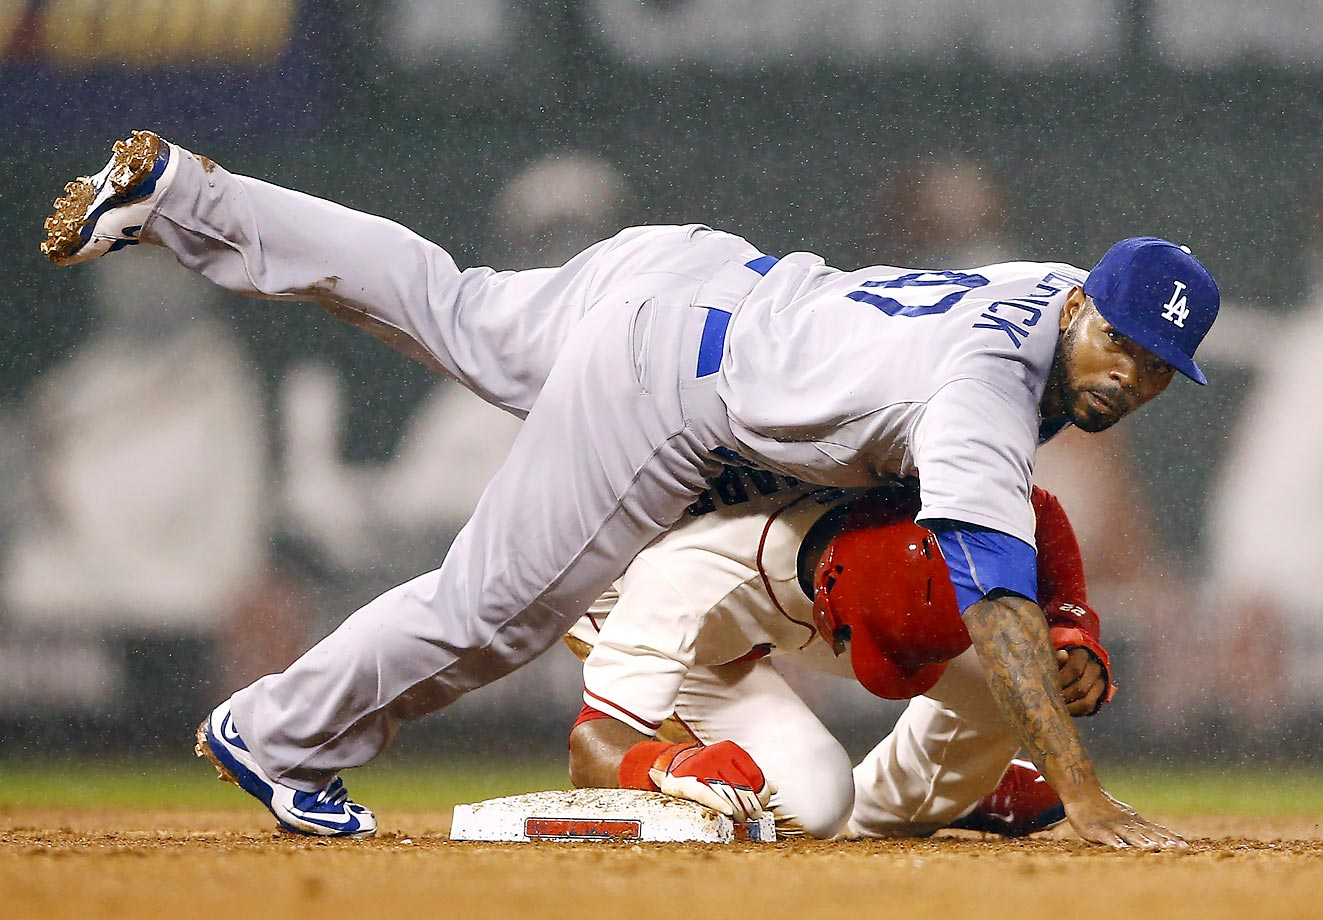 Howie Kendrick of the Los Angeles Dodgers turns a double play over Jason Heyward of the Cardinals.